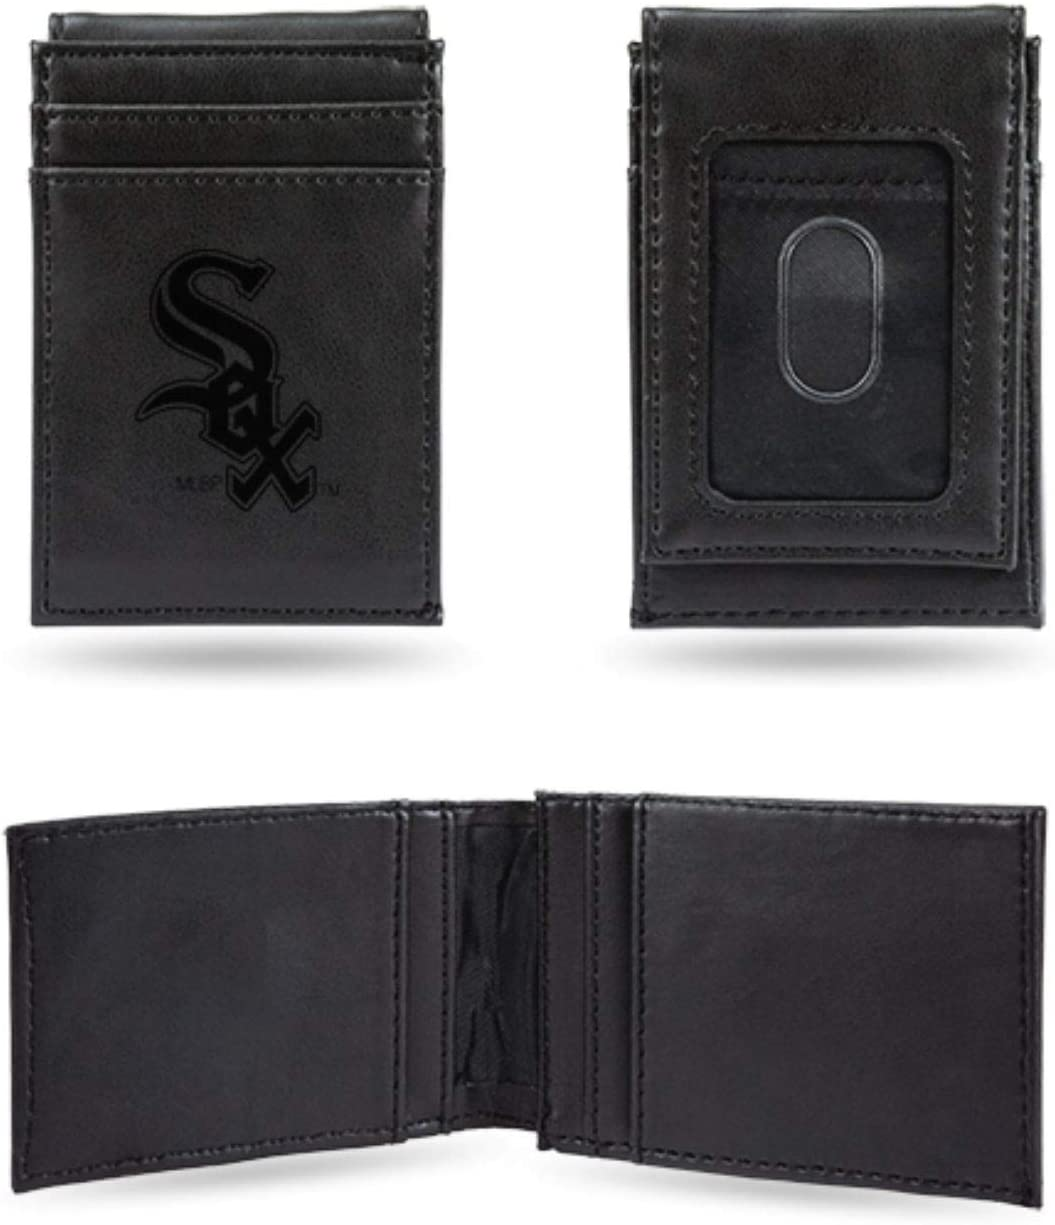 Rico Industries White Sox Laser Engraved Black Billfold Wallet